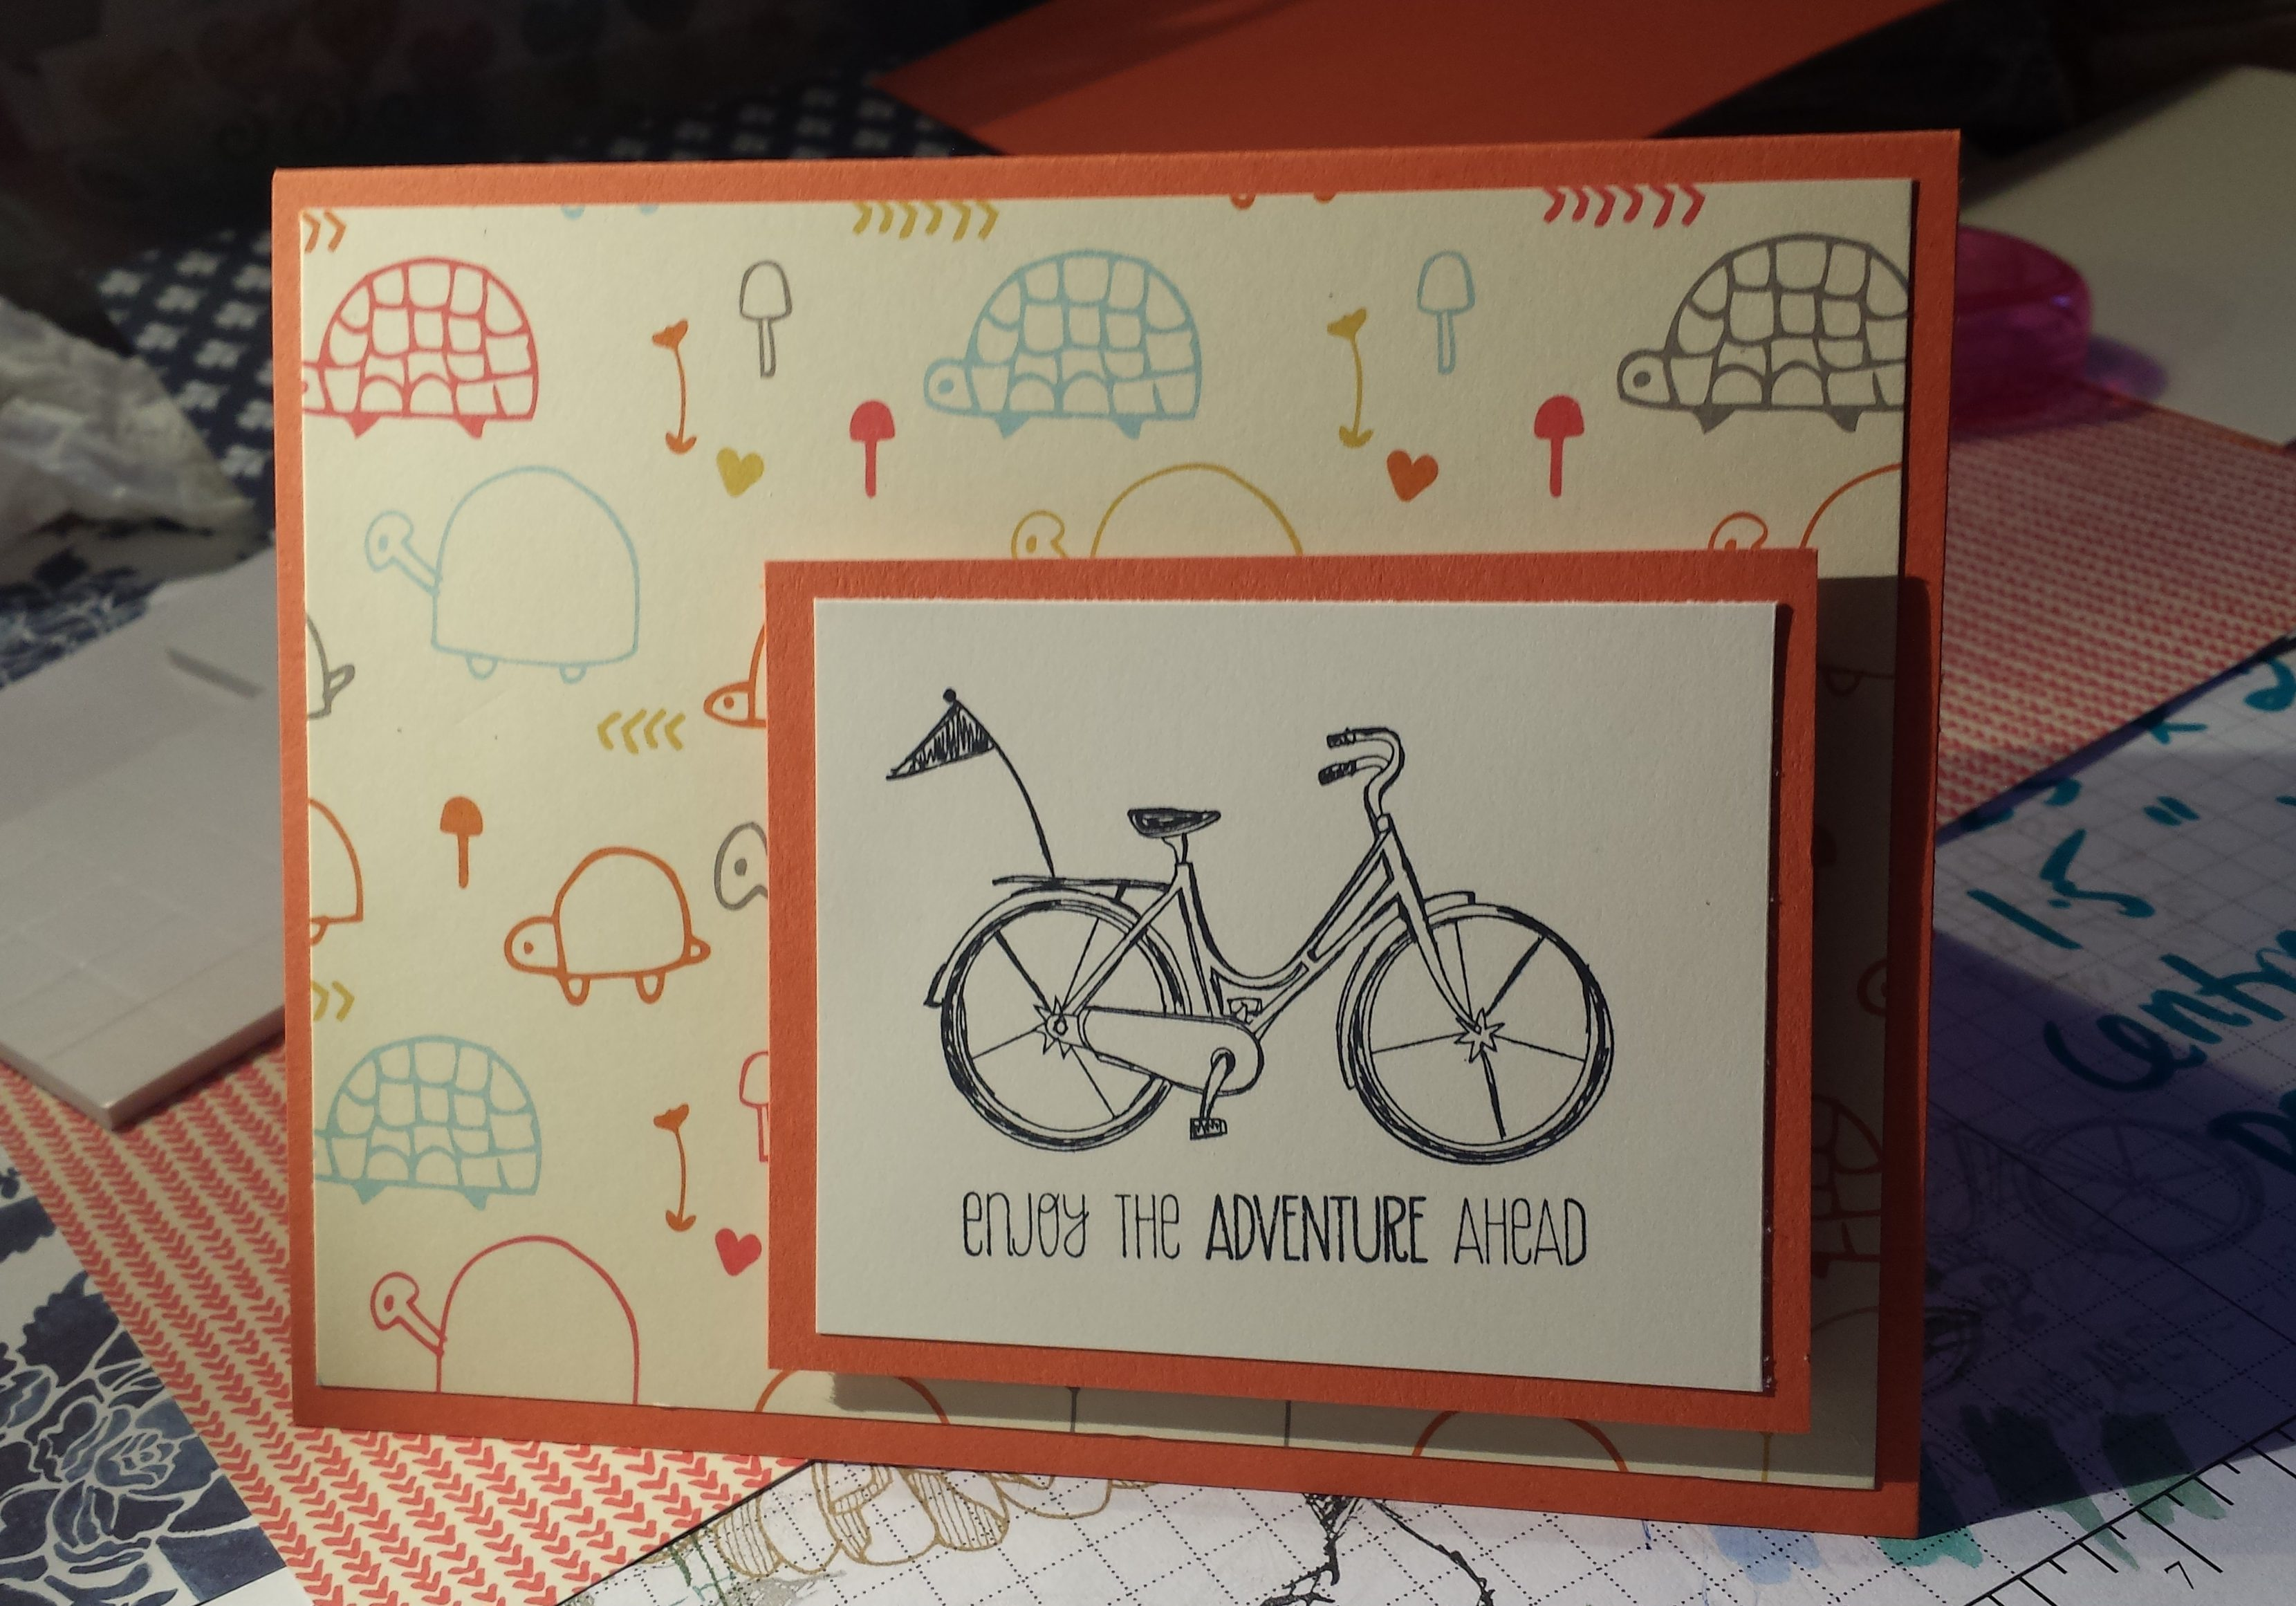 turtles and bicyle. enjoy the adventure ahead